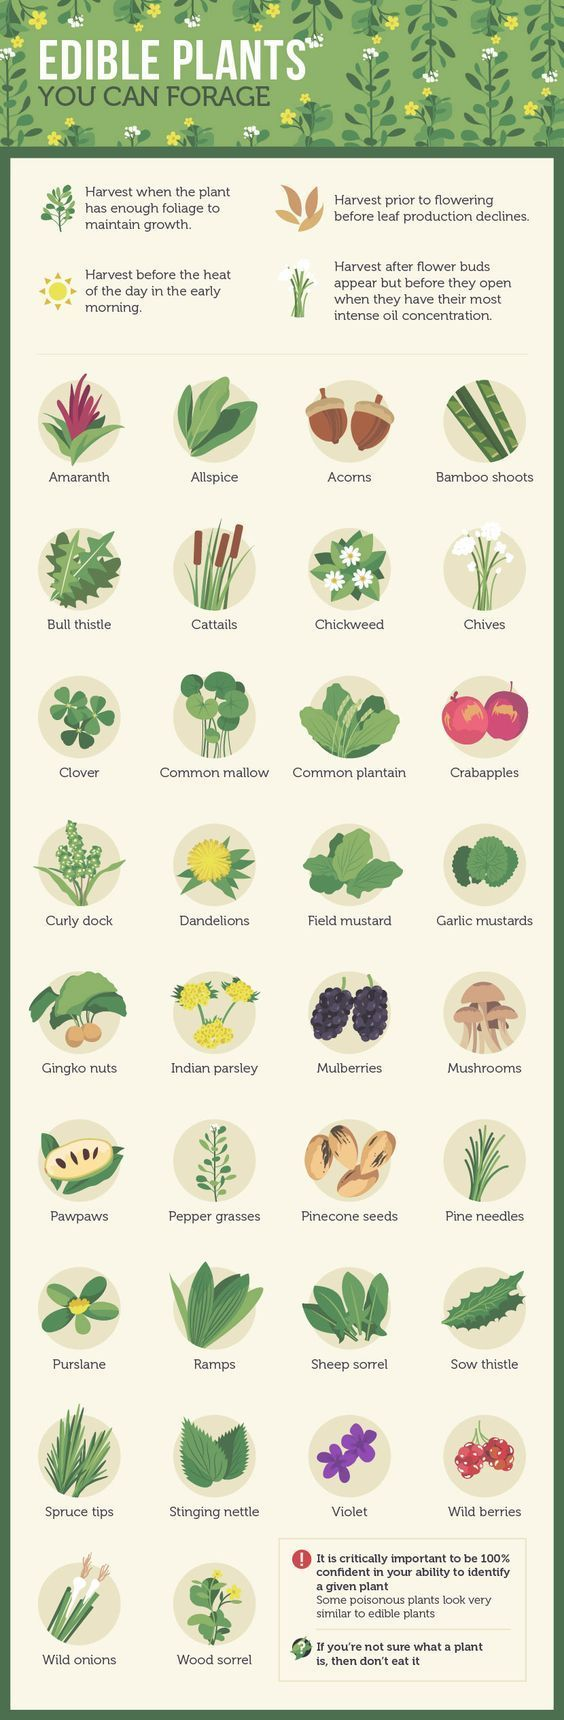 Edible Plants You Can Forage For http://marclanders.com/edible-plants-can-forage/